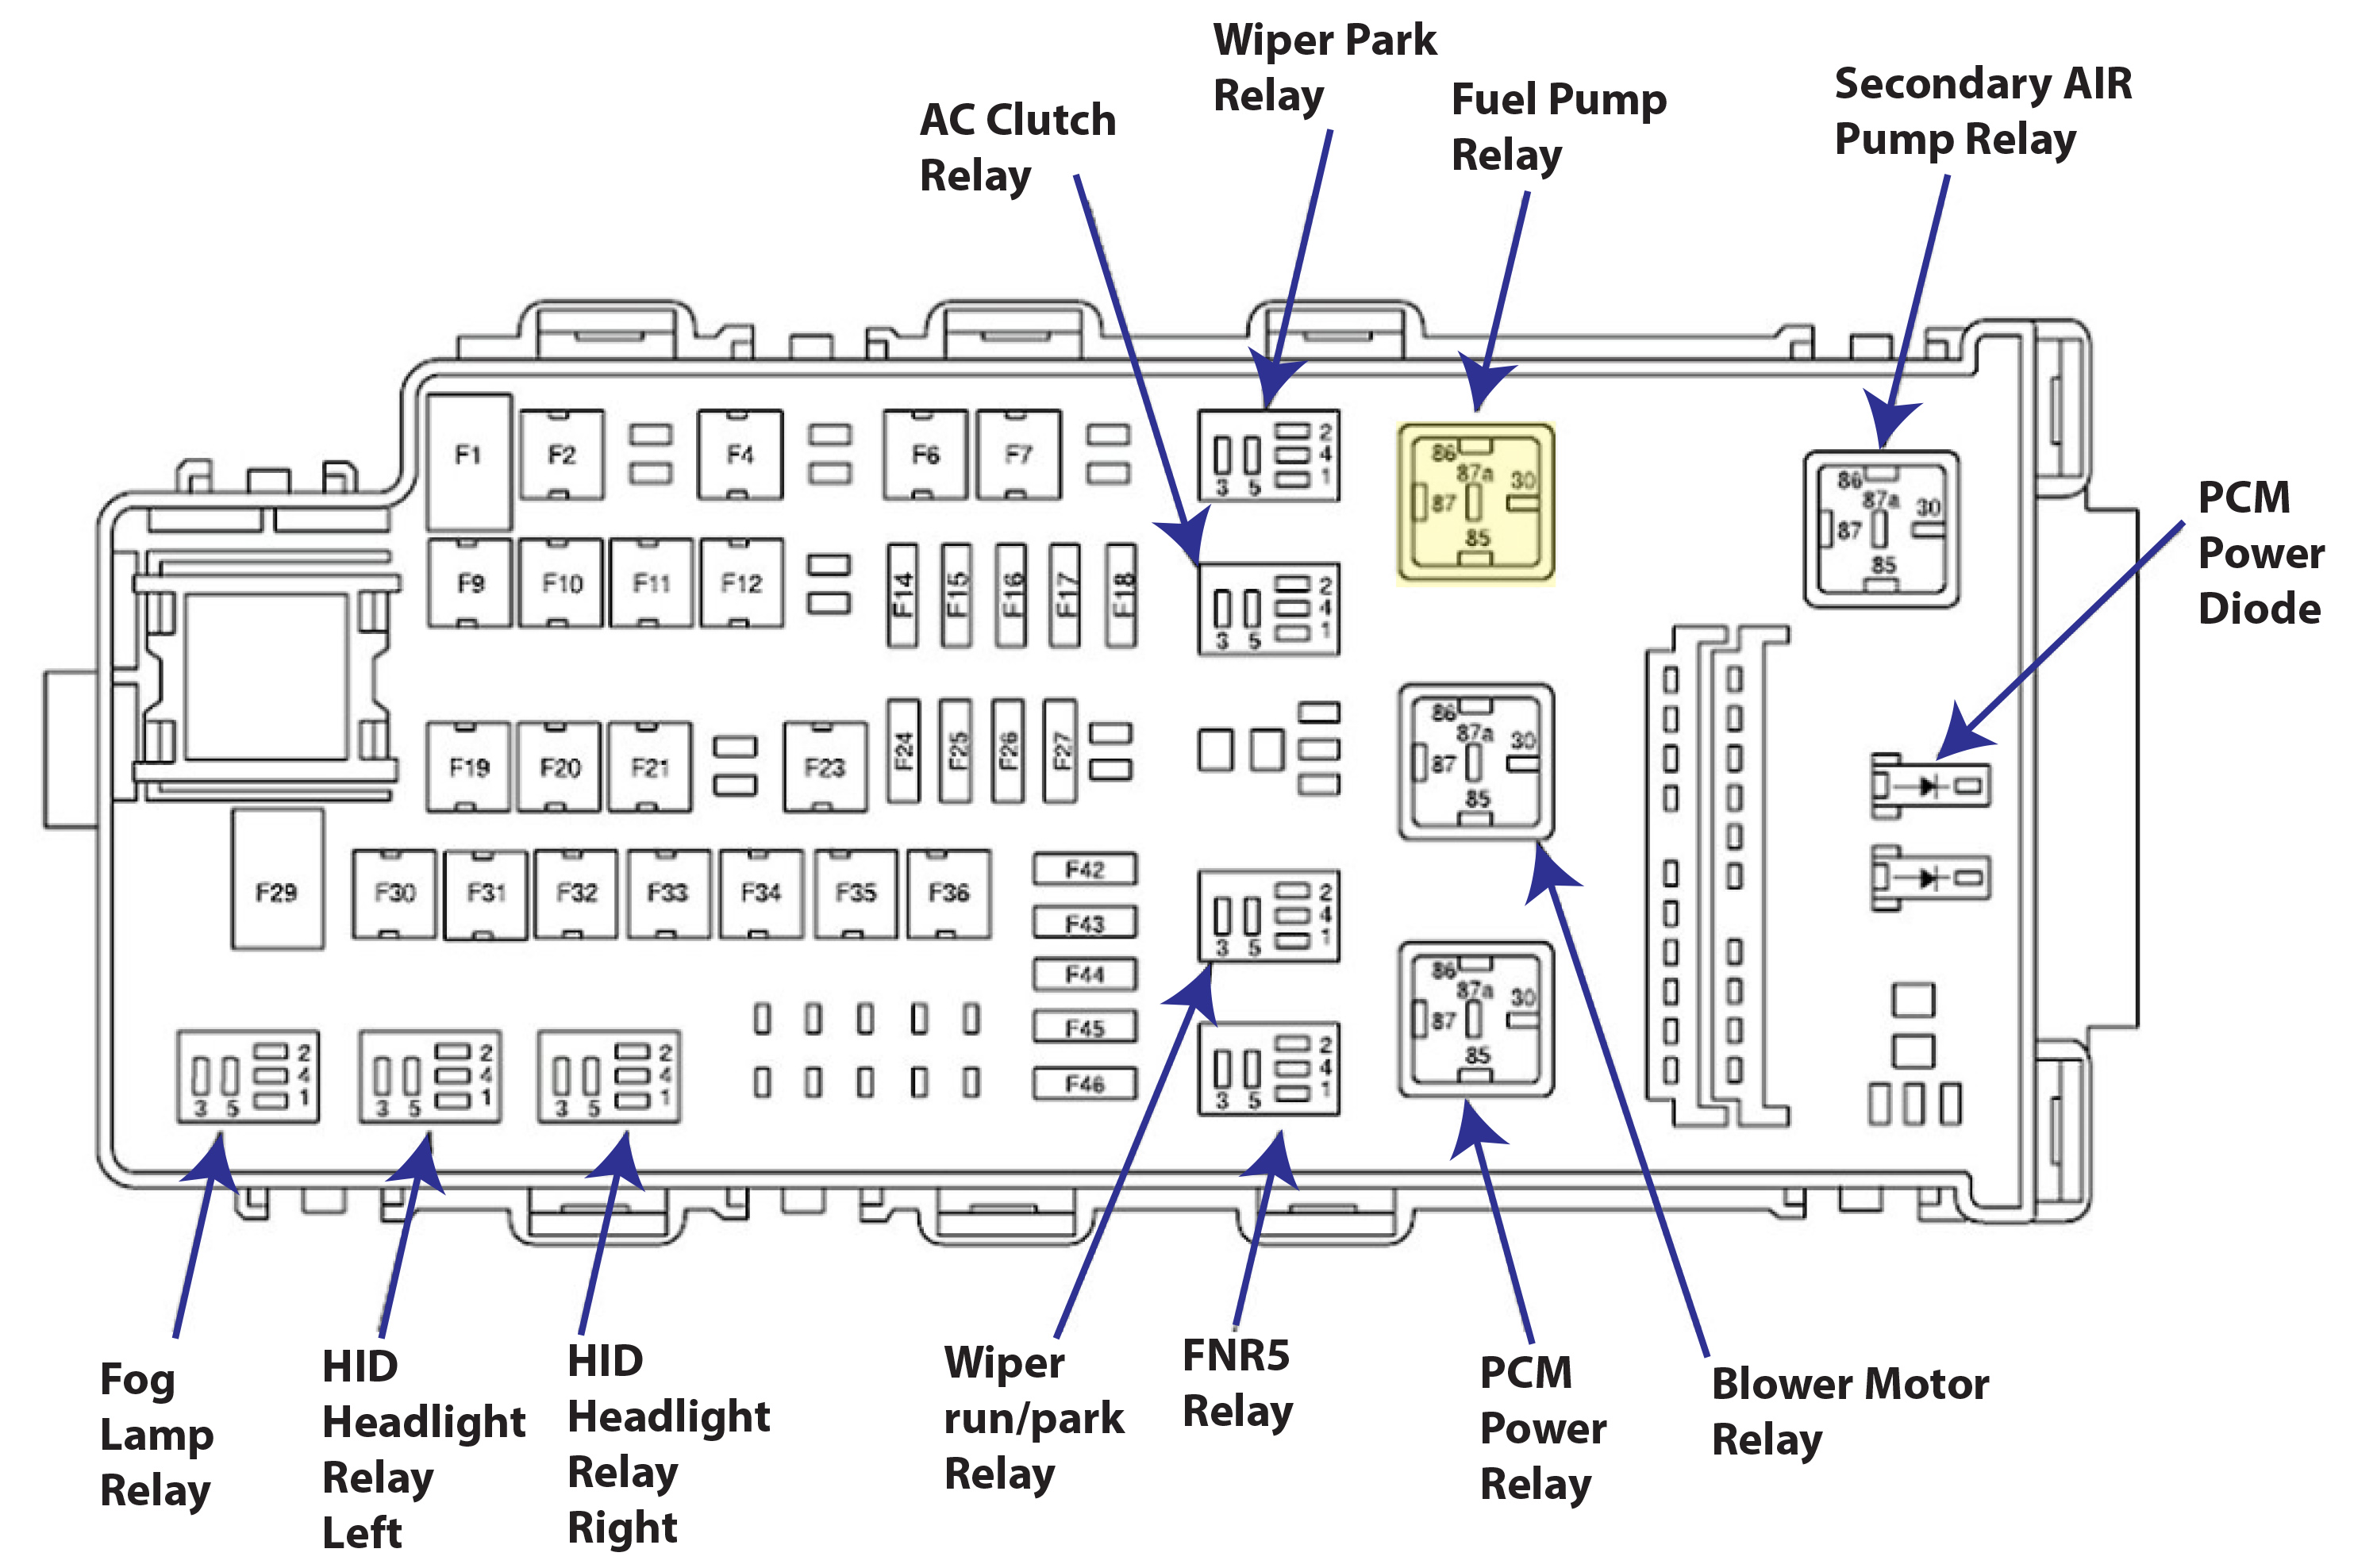 [DIAGRAM] 2009 Ford Edge Fuse Box Diagram U2013 Circuit